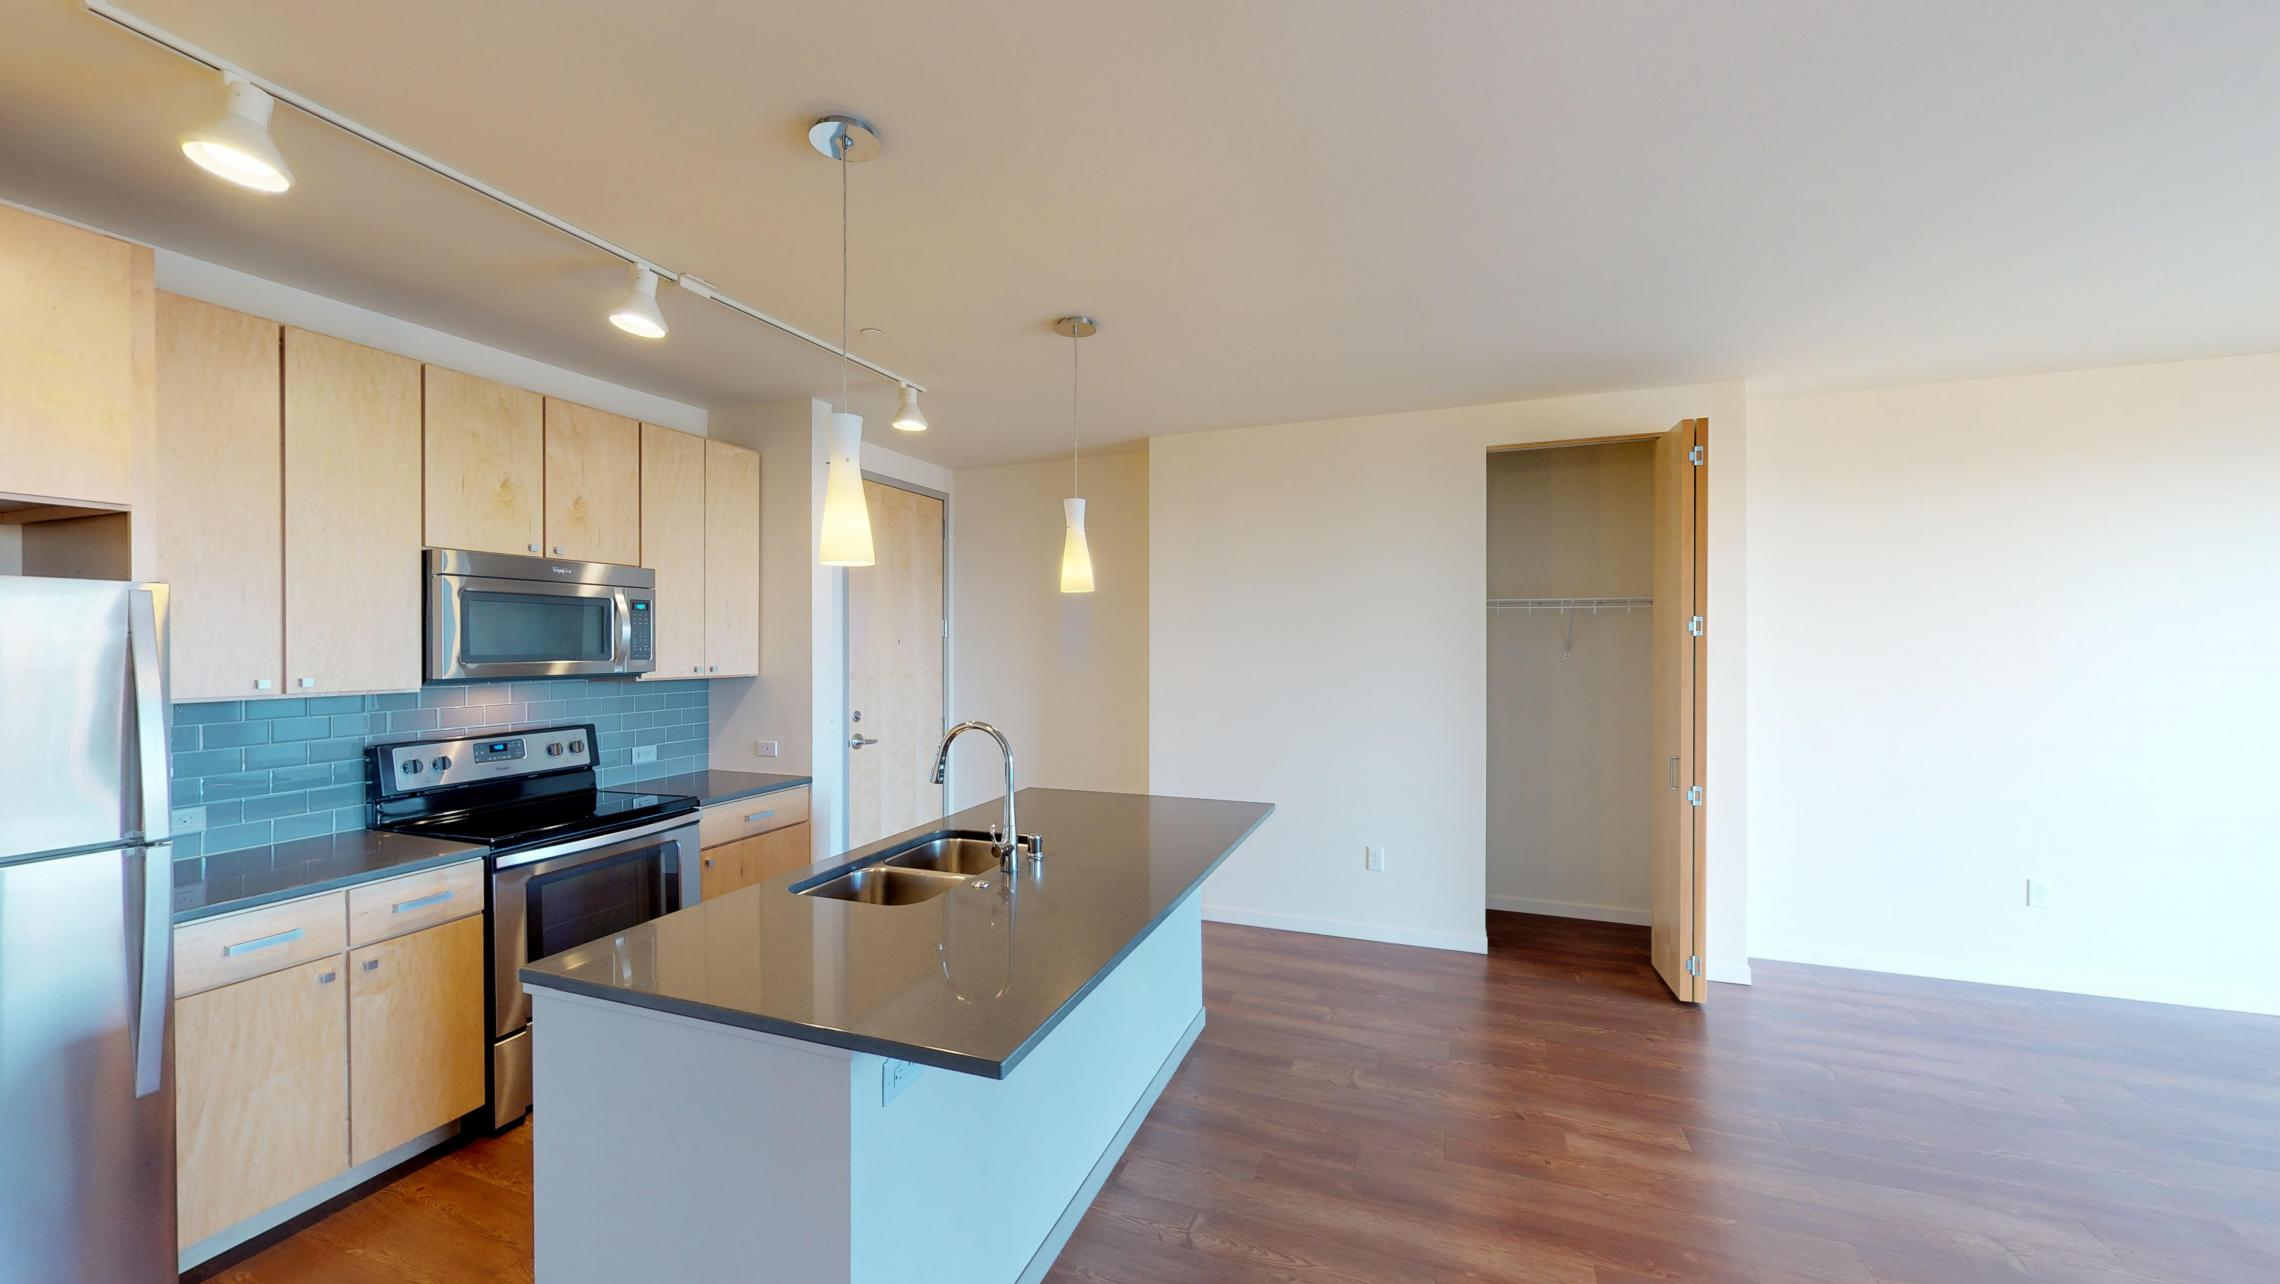 Nine-Line-Apartment-517-kitchen-appliances-moder-lake-view-downtown-captiol-madison-lifestyle-dining.jpg